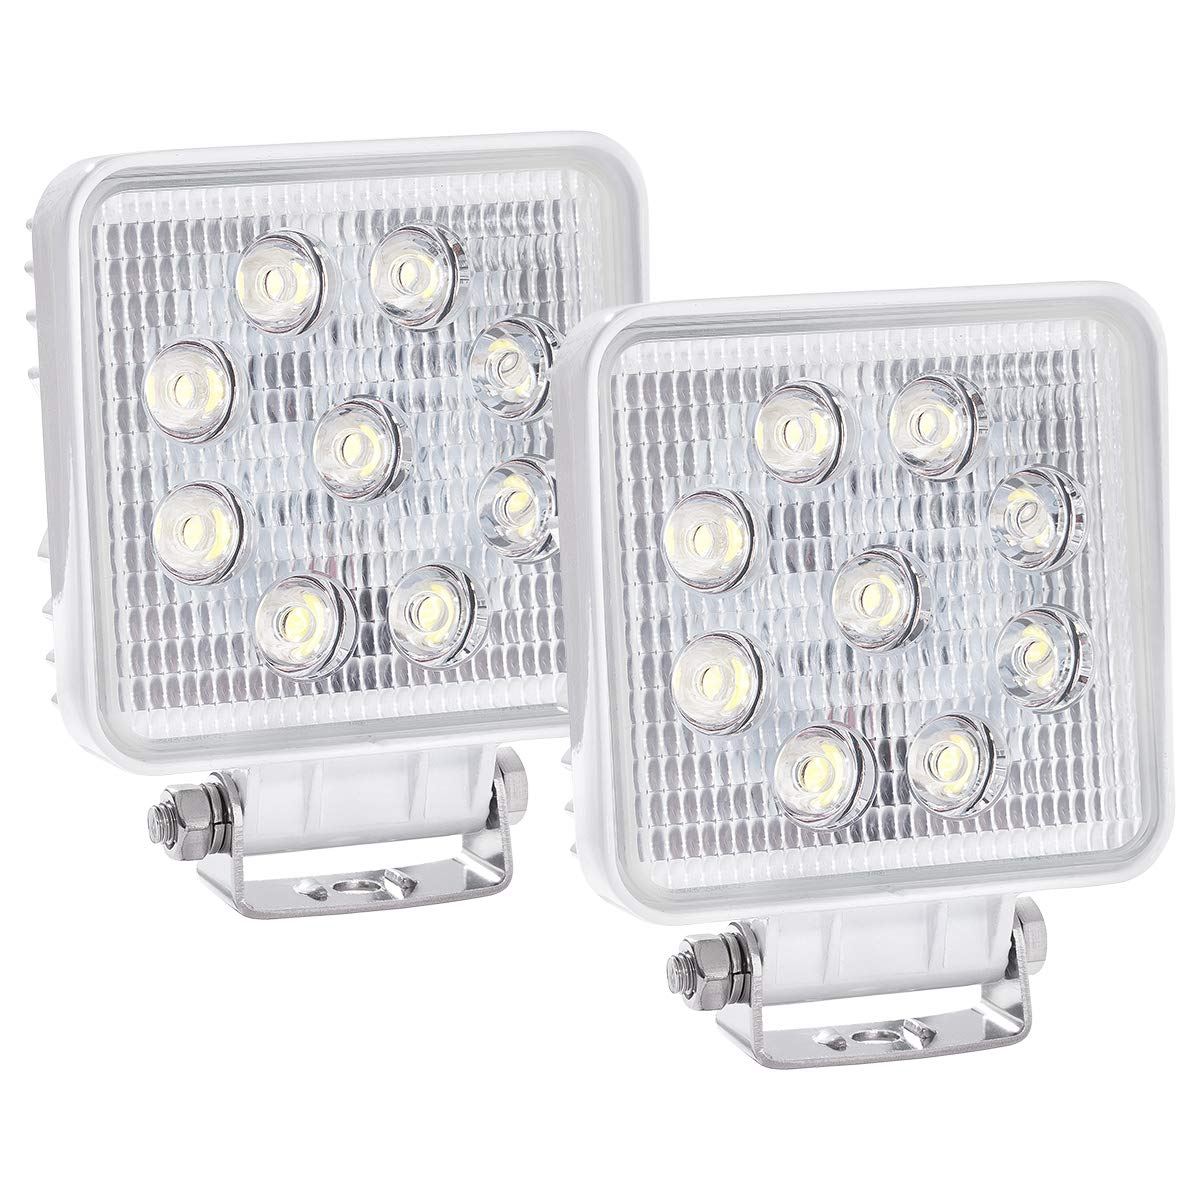 WFPOWER Boat Light 2 Pack, LED Marine Spotlights Waterproof, Deck Dock Flood Light Work Light for Boat Accessories Pontoon Fishing Truck SUV Off-Road 12V Square White by WFPOWER